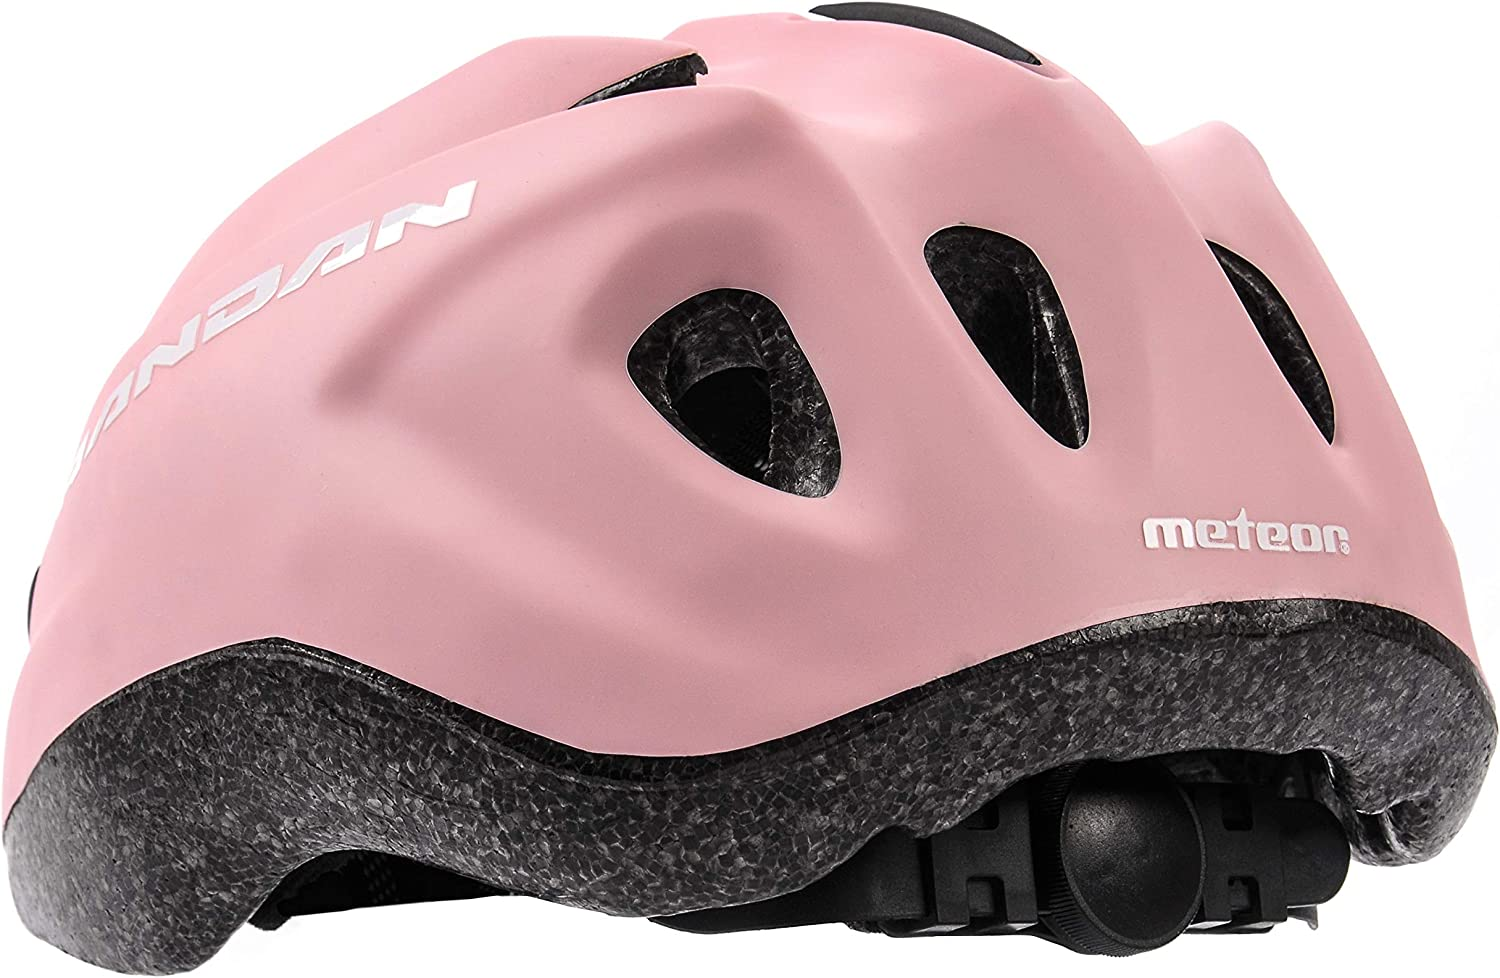 meteor Baby Kids Childrens Boys Cycle Safety Crash Helmet Small Sizes For Child MTB Bike Bicycle Skateboard Scooter Hoverboard Riding Lightweight Adjustable Breathable Randan